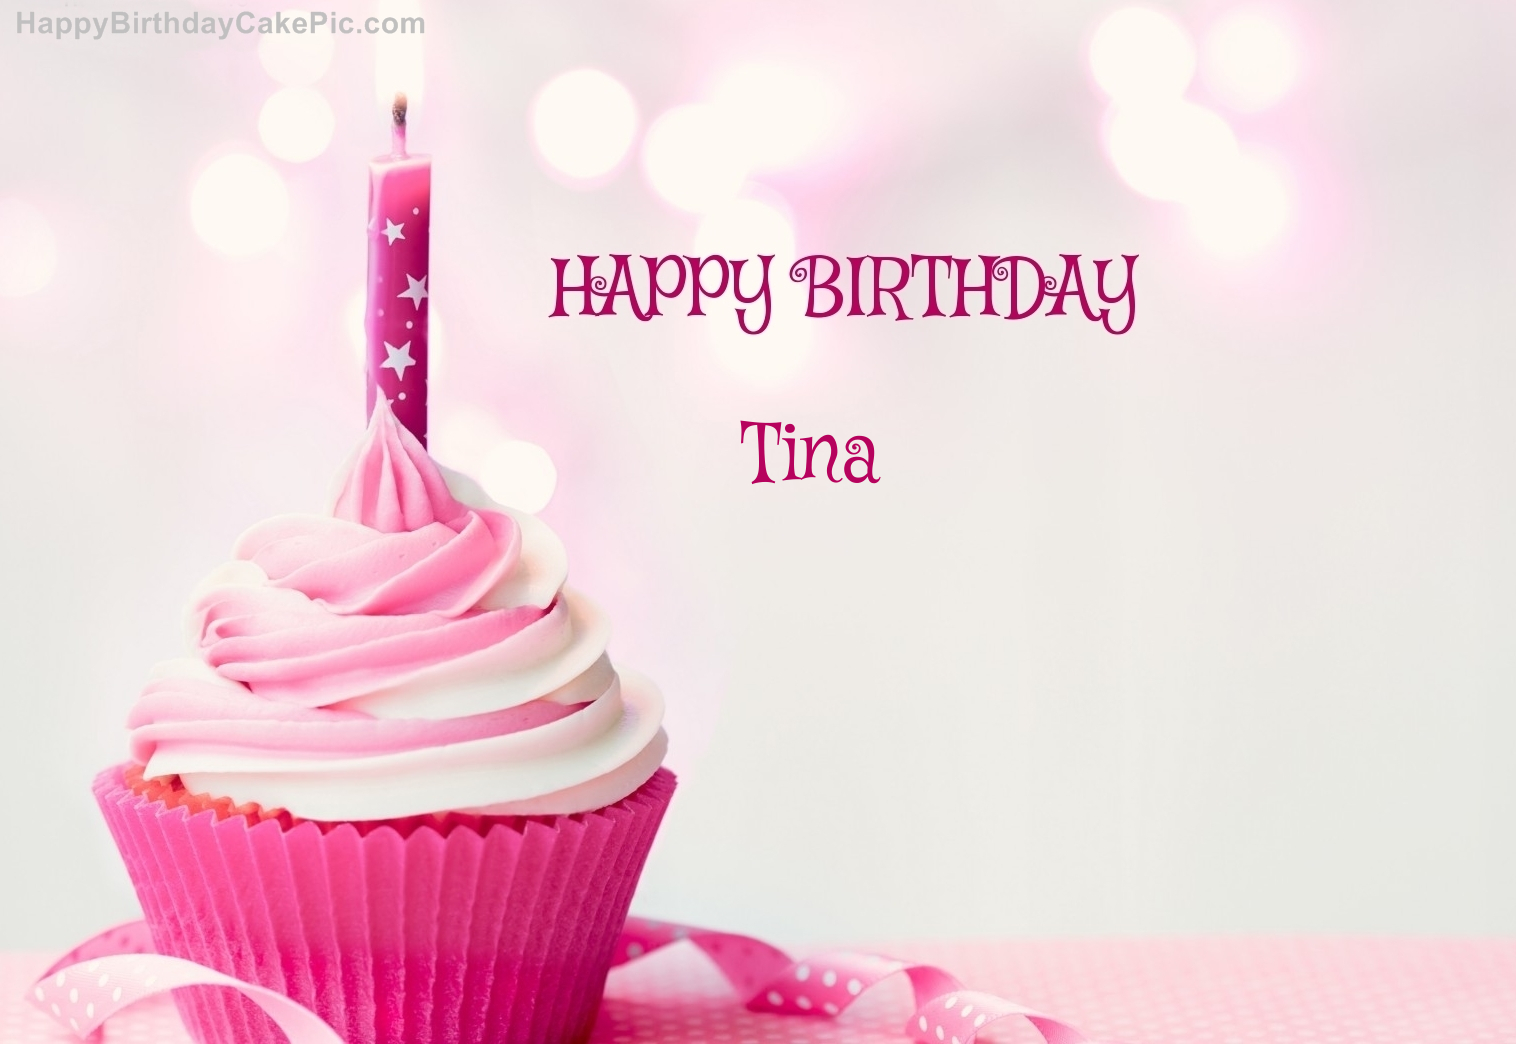 Happy Birthday Cupcake Candle Pink Cake For Tina